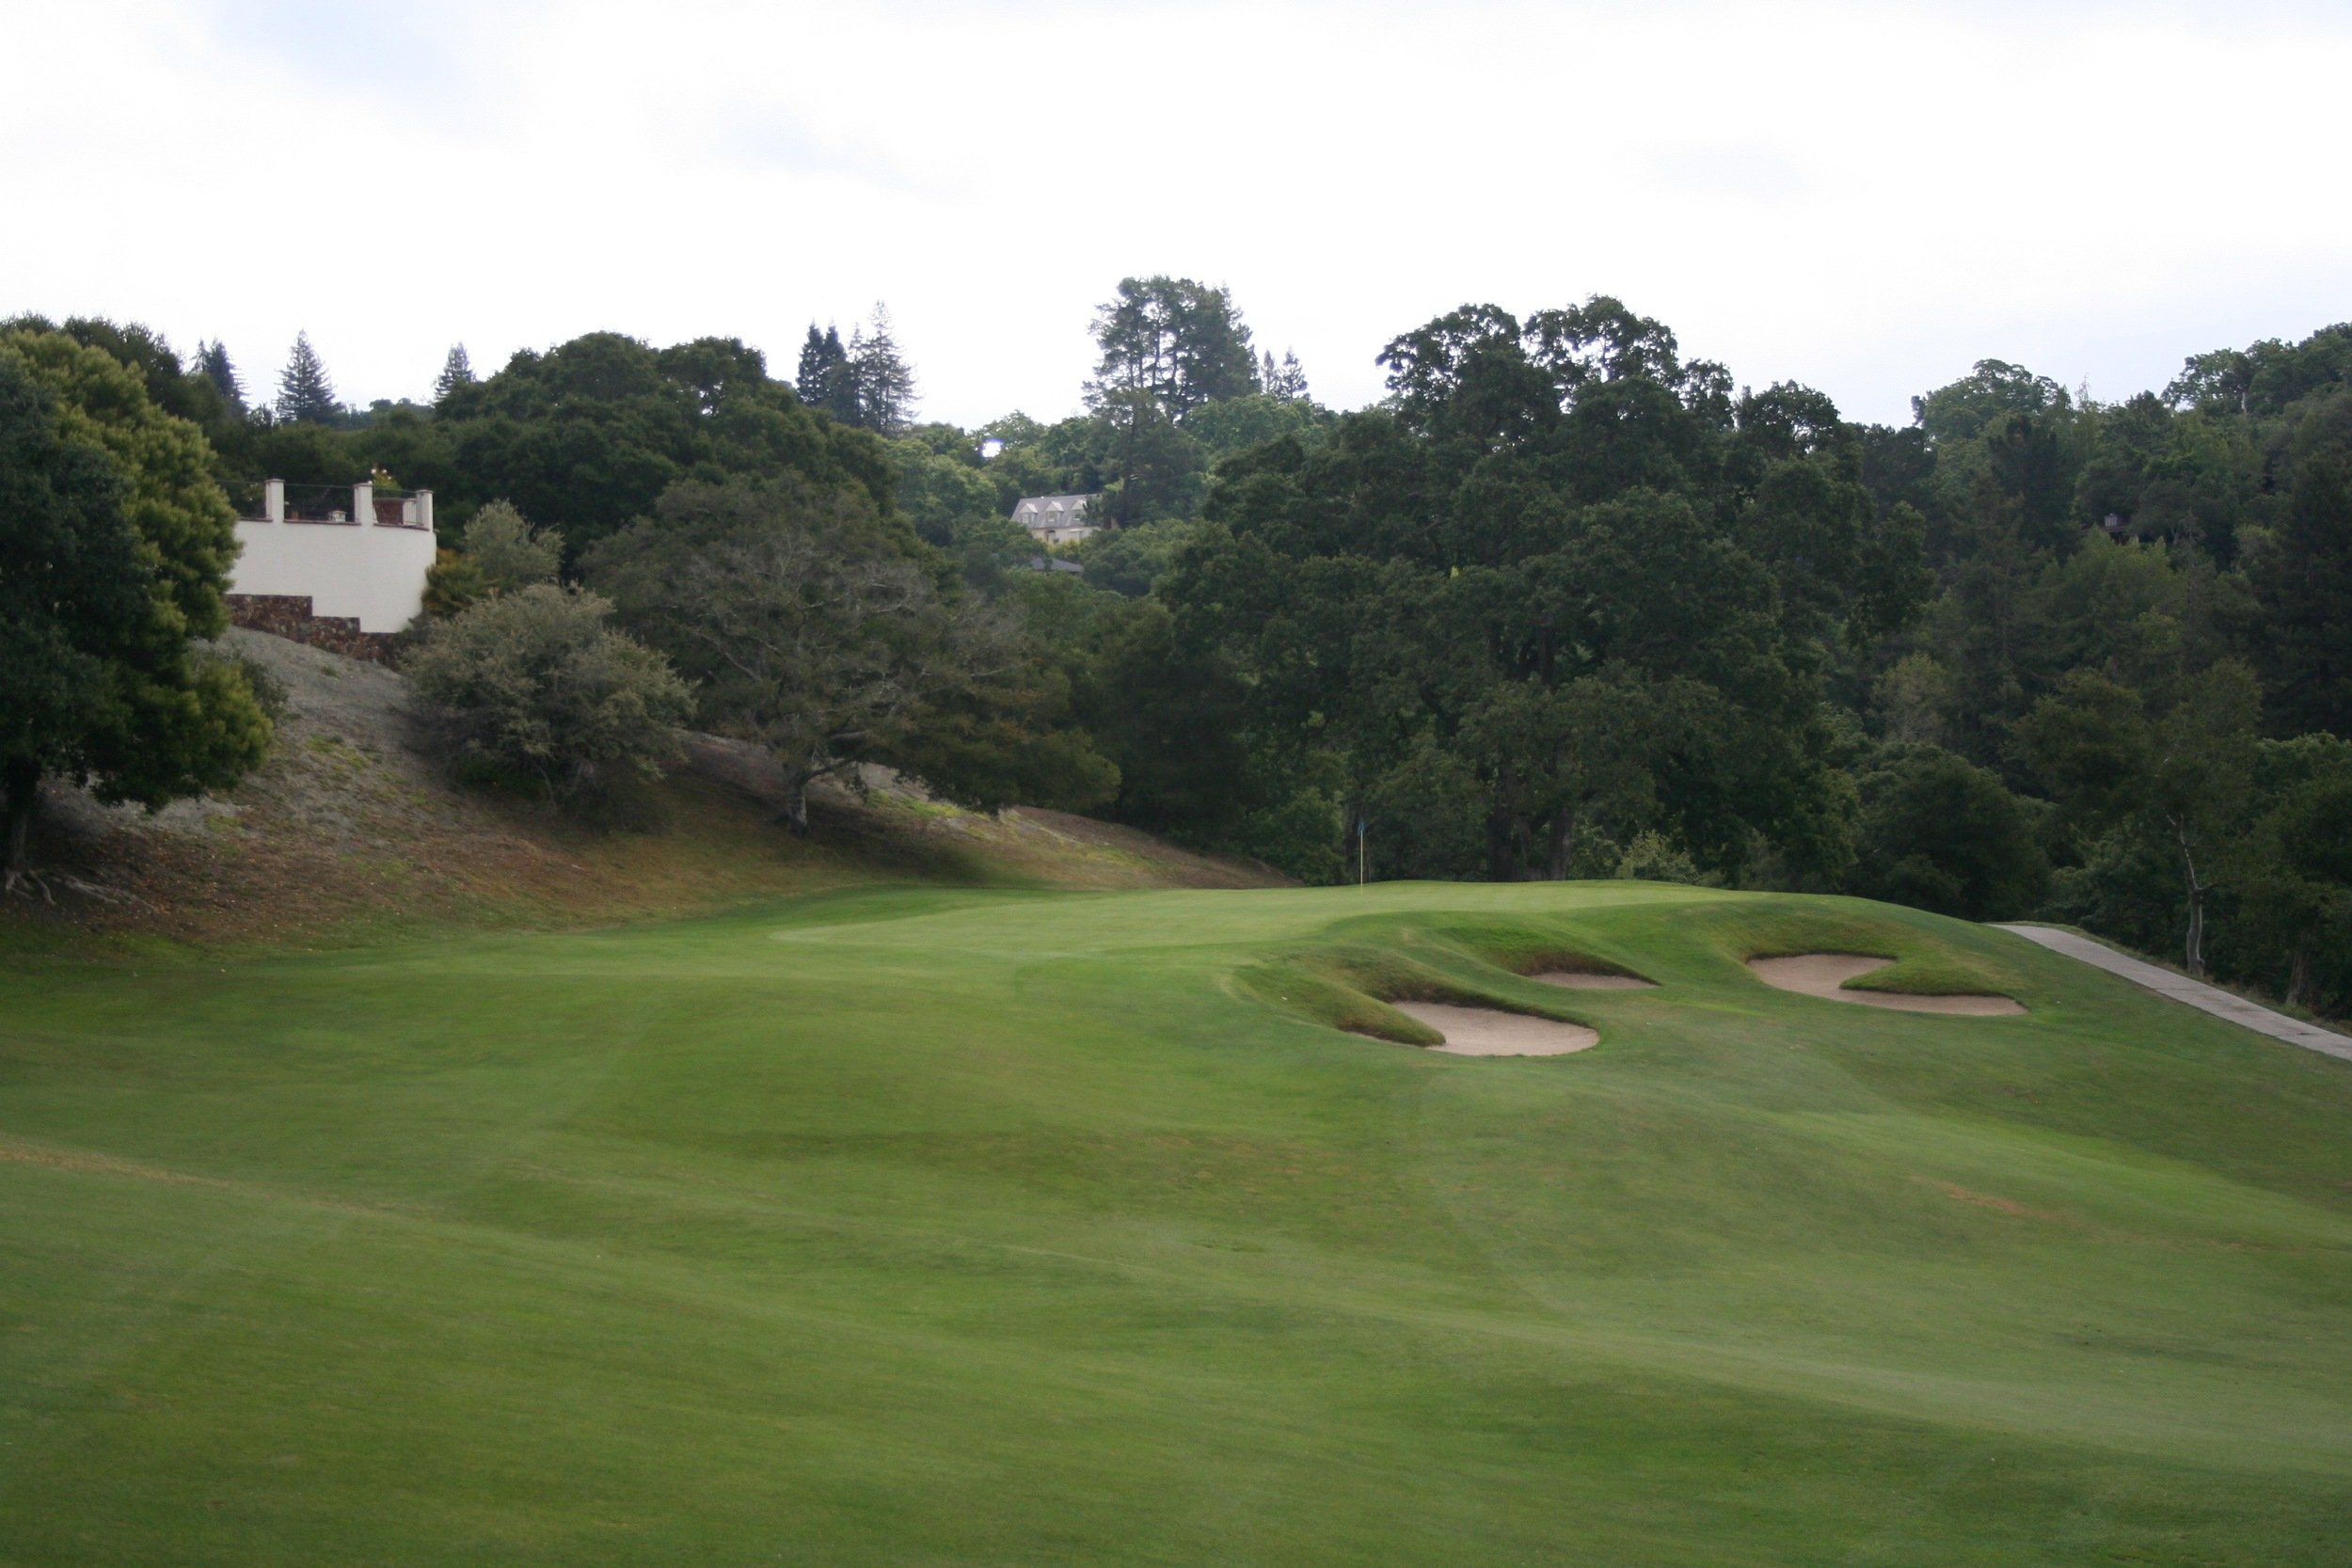 hochstein-design-orinda-cc-beforeafter-hole-4-3.jpg